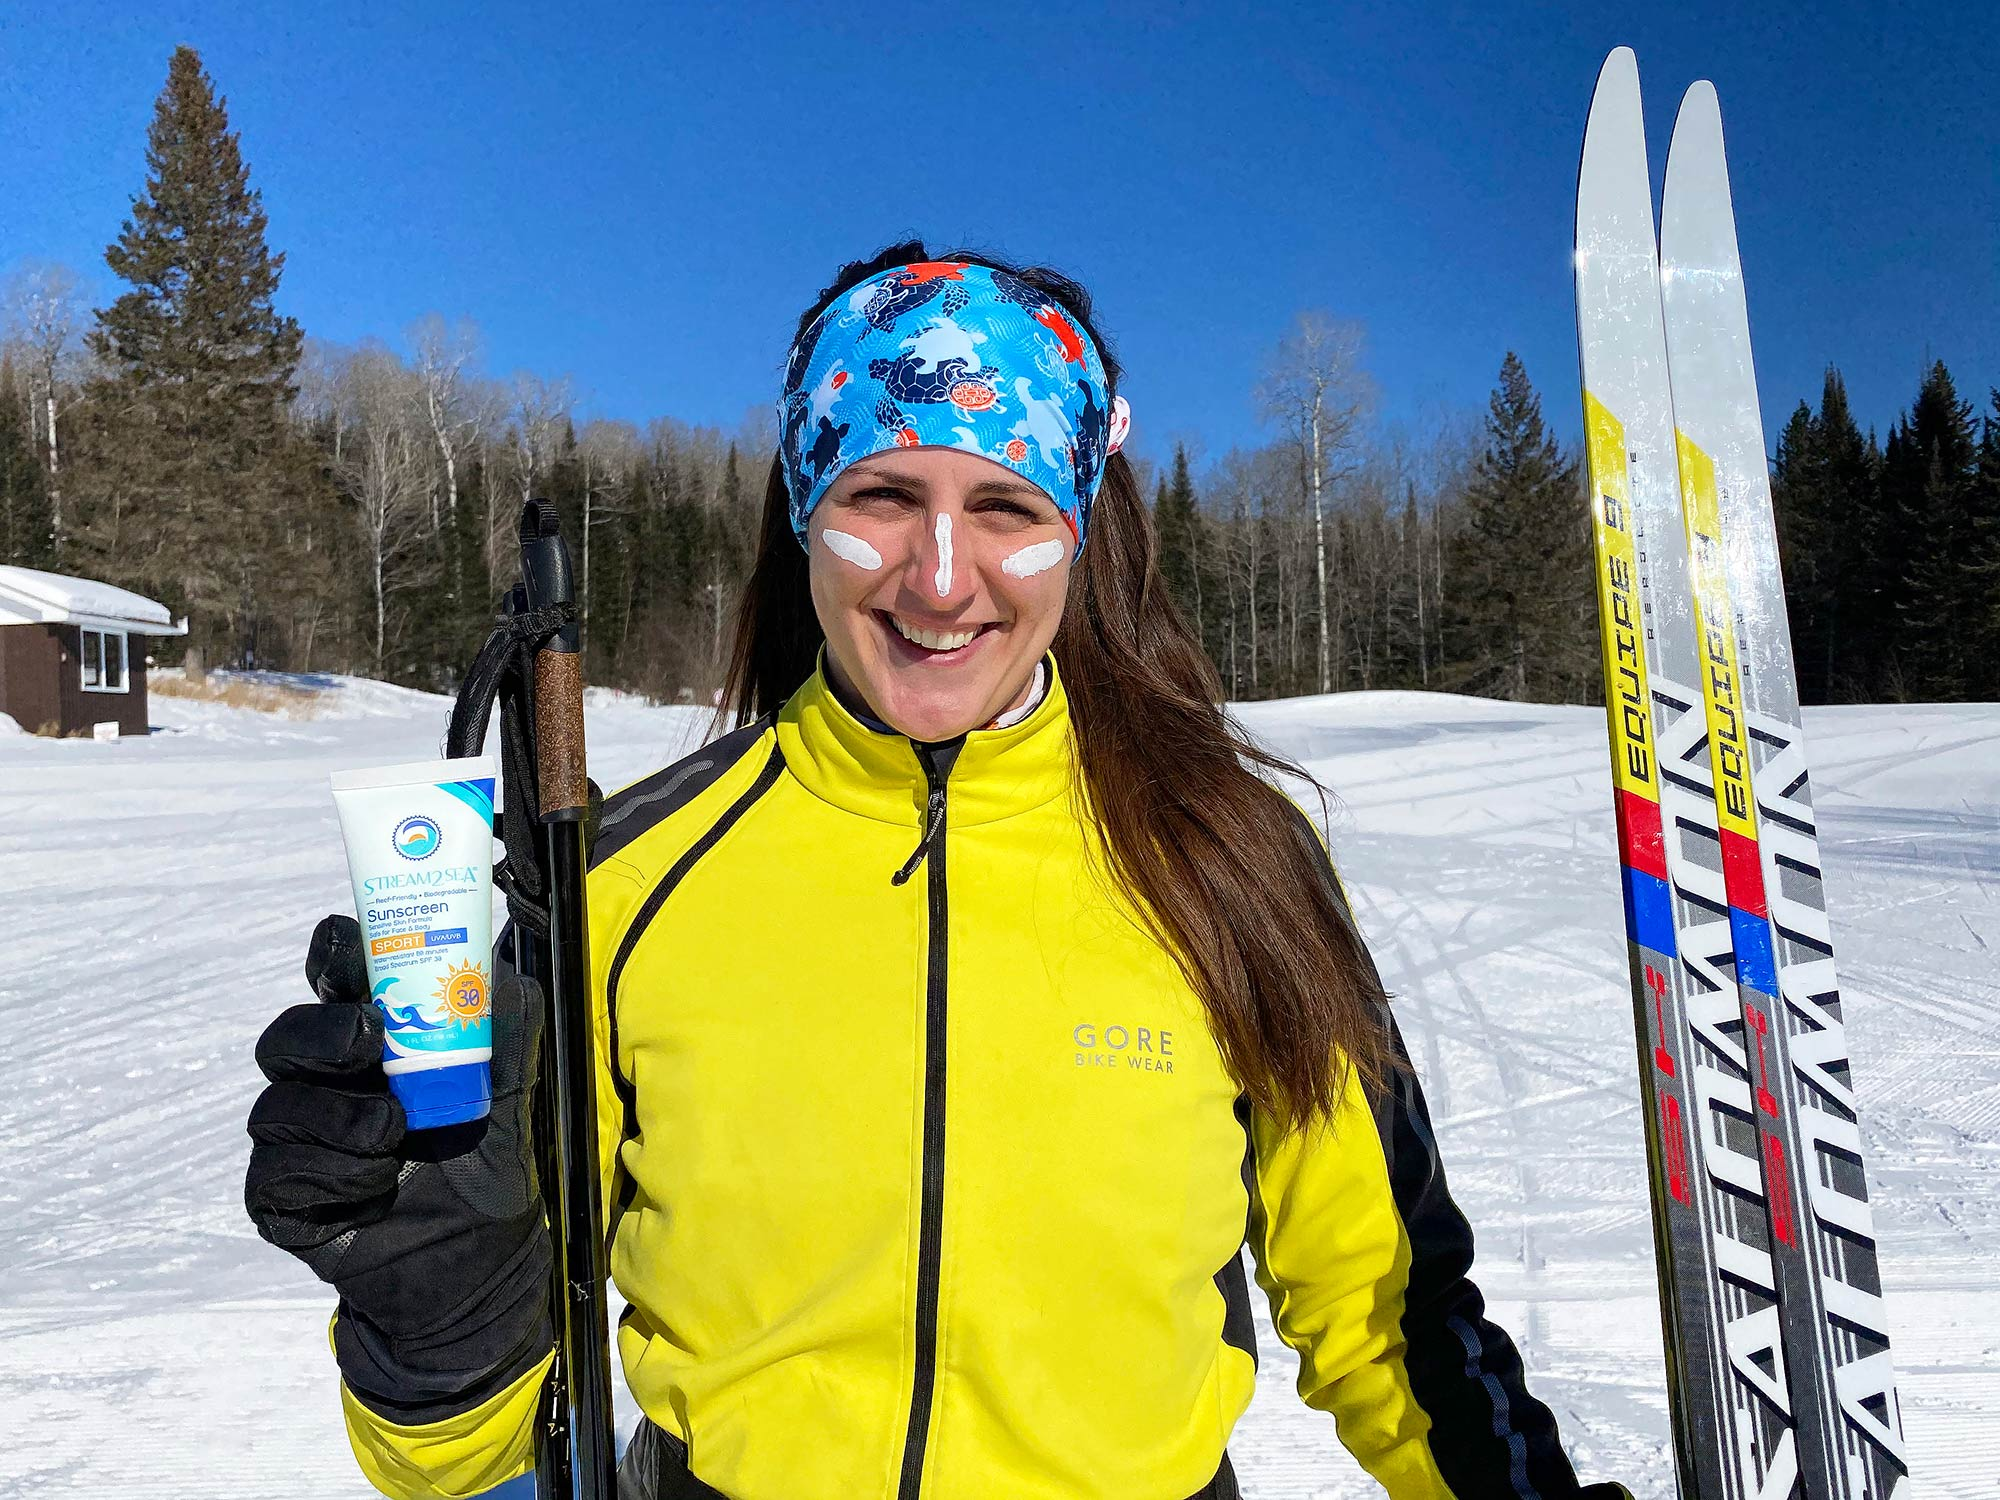 Travel Buddies 4 Life Winter Use Of Stream2Sea's Environmentally Friendly Products